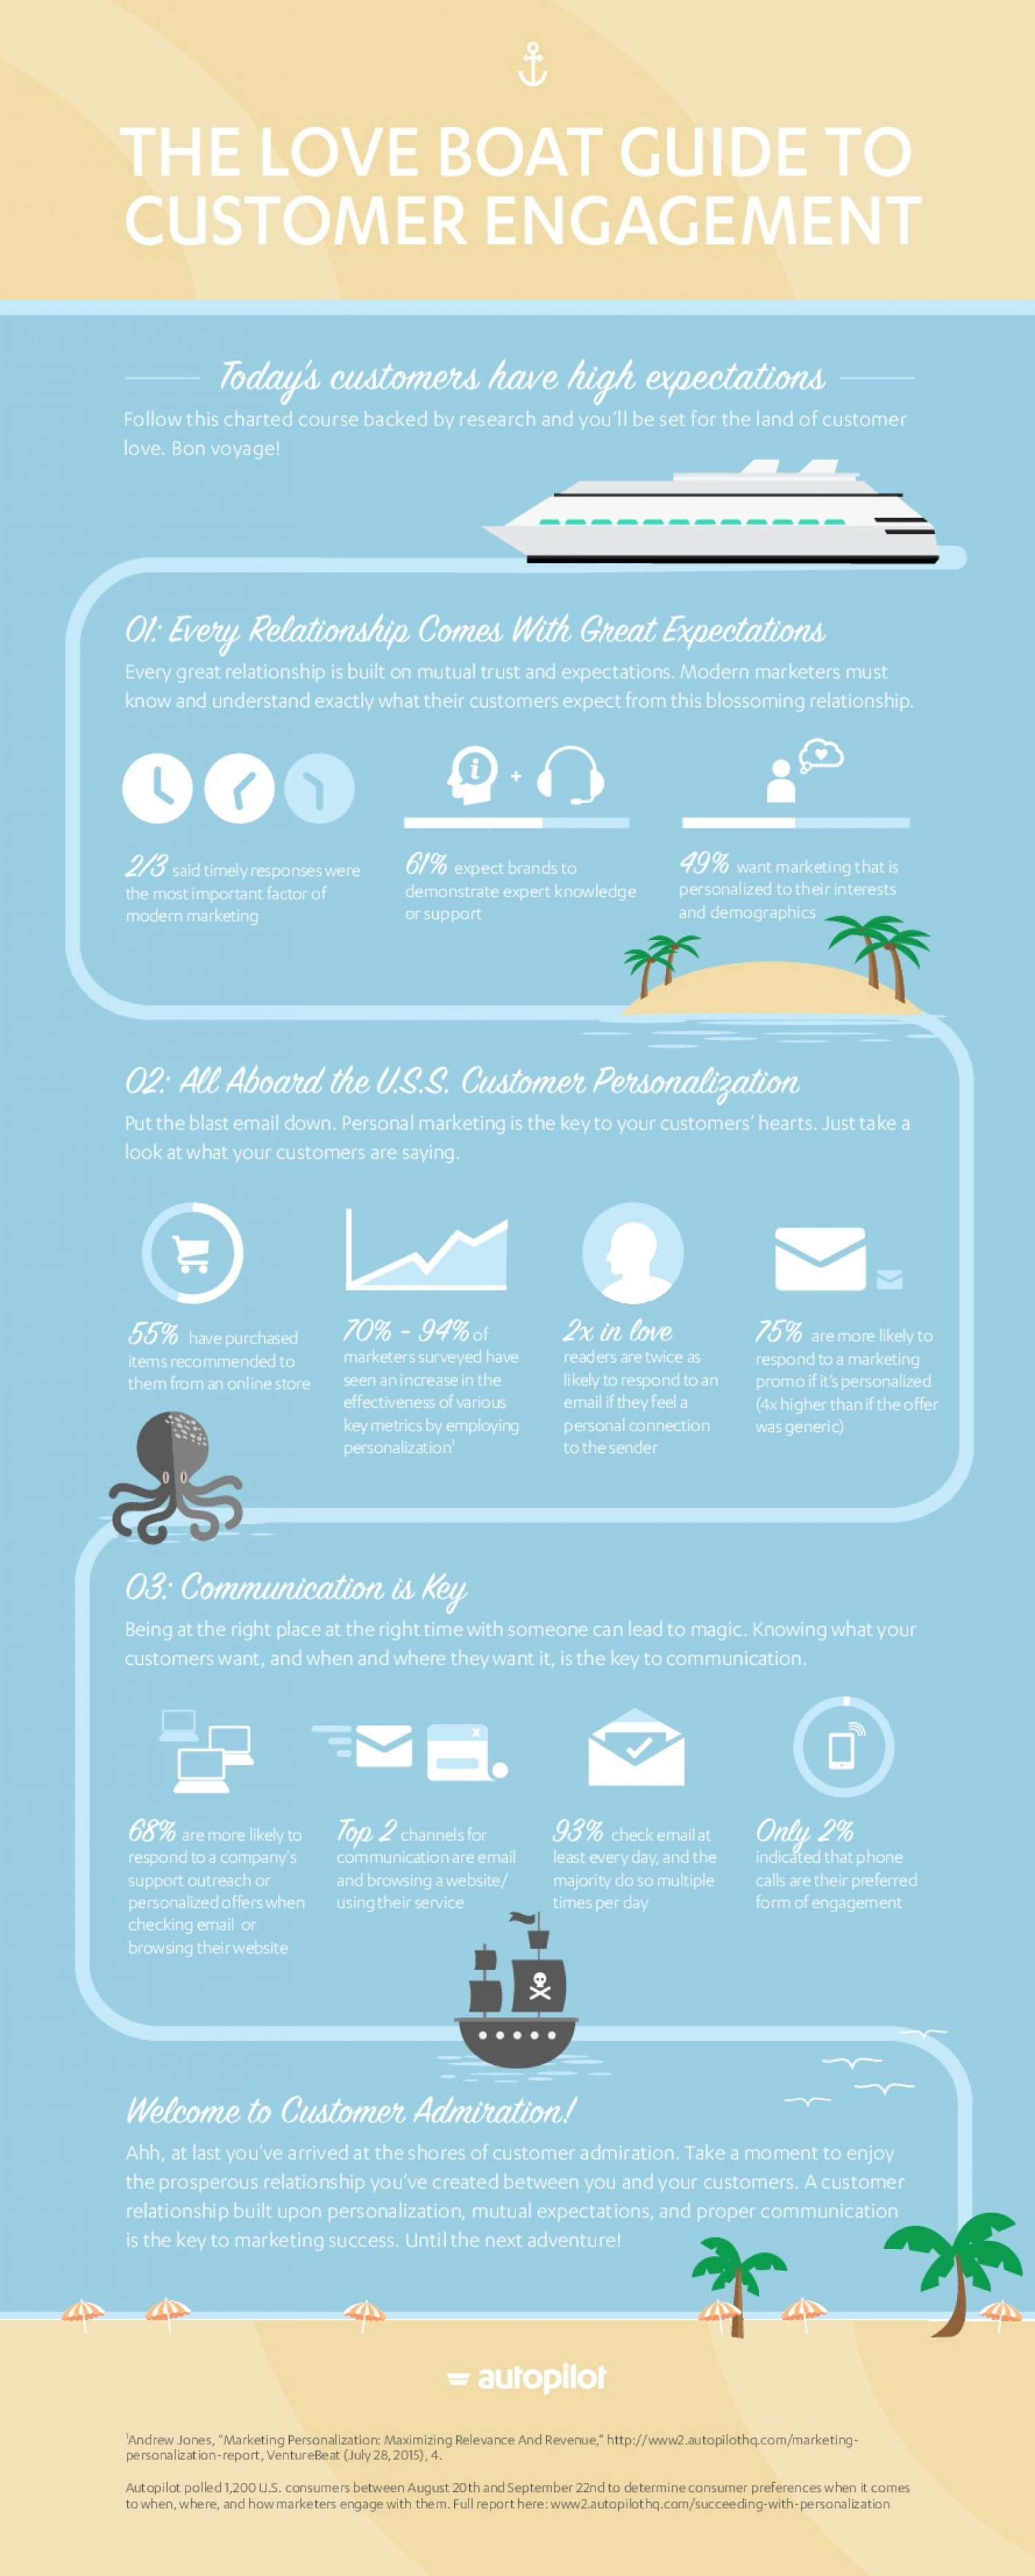 The Love Boat Guide to Customer Engagement Infographic